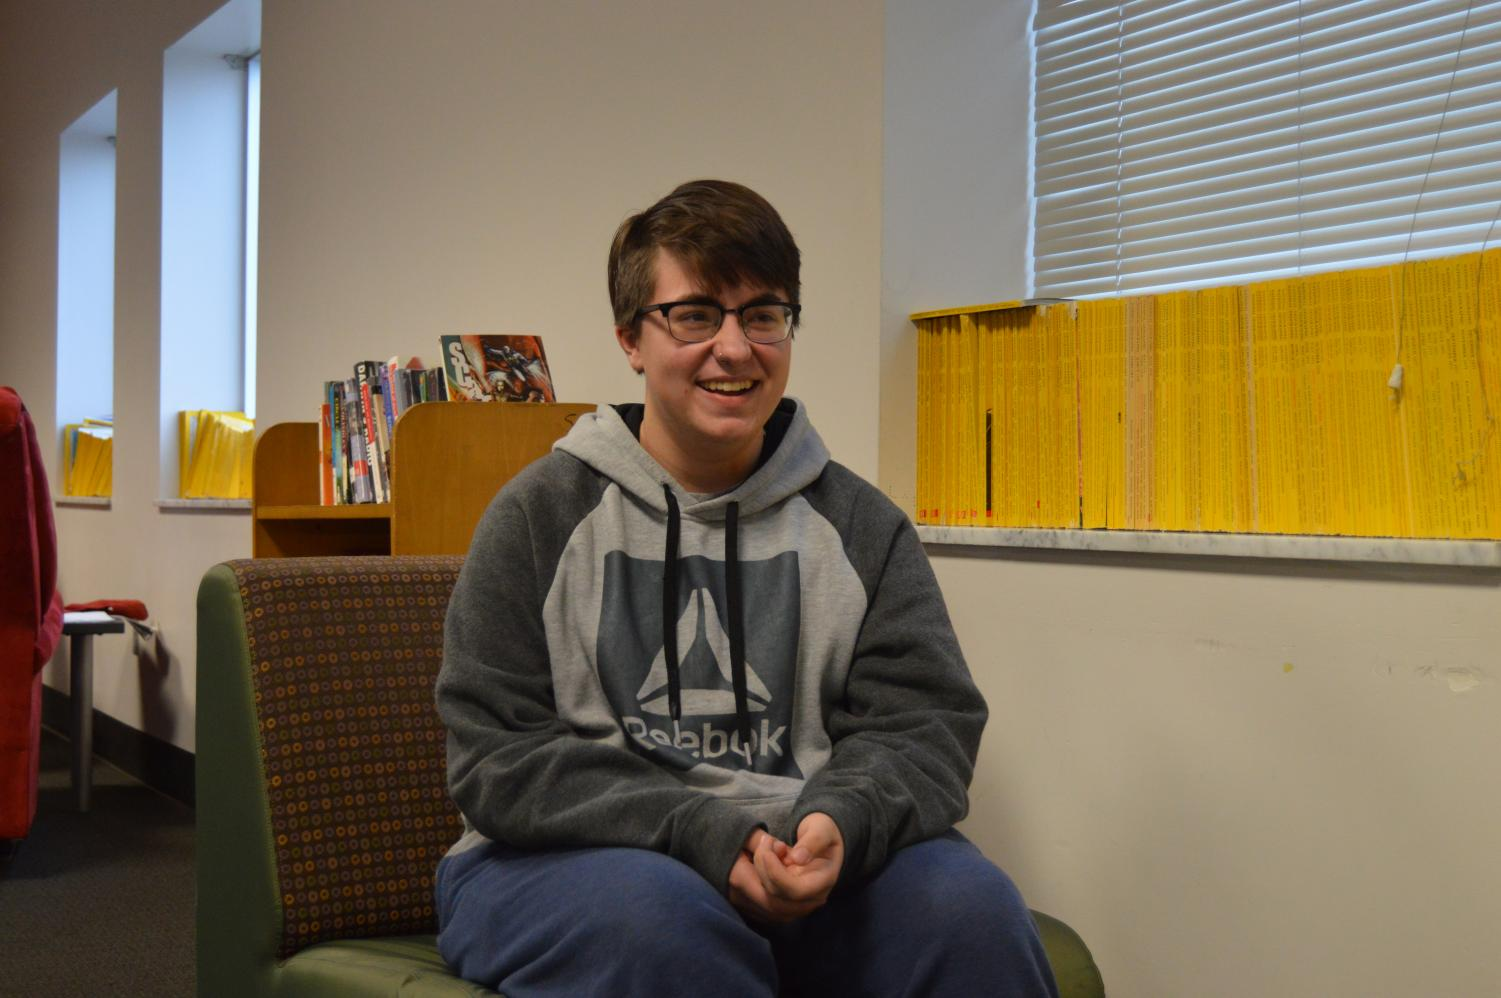 Junior Thomas McNeil talks with his friends during school on Dec. 18. McNeil came out as transgender in 2018 and is thankful for the friends that have stayed by his side.